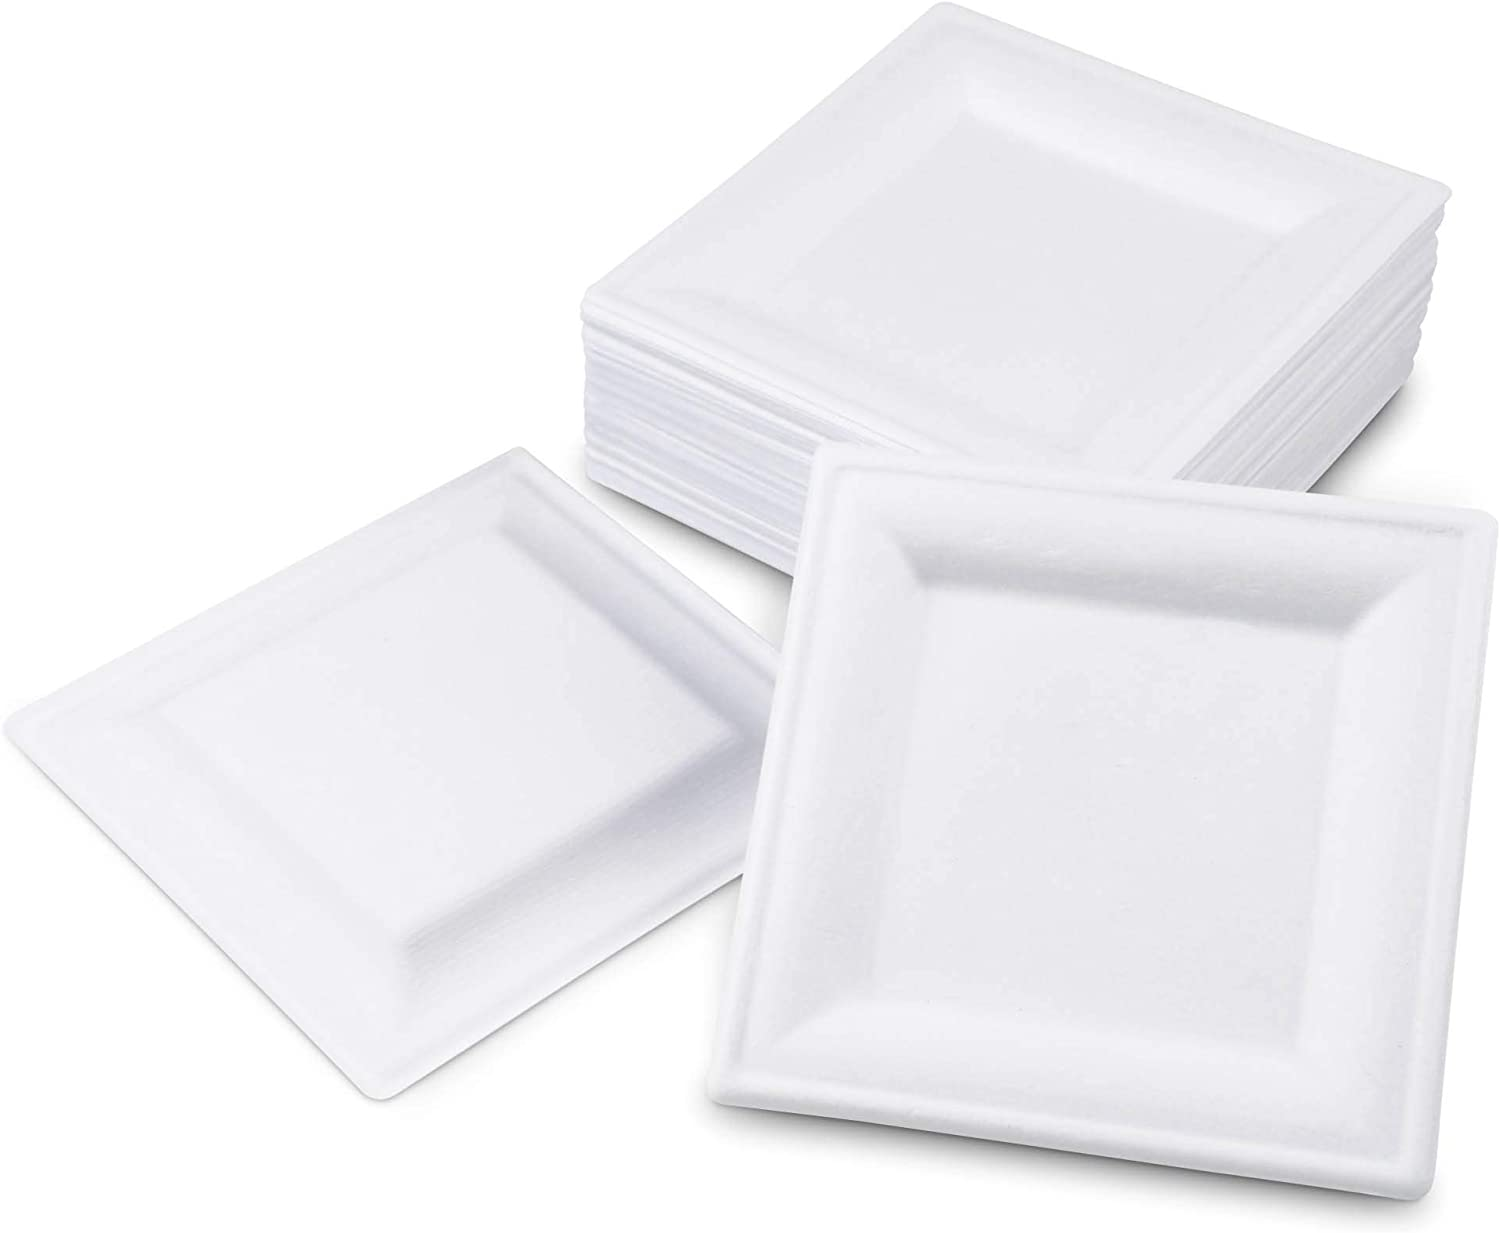 """[100 Pack] Square 6"""" x 6"""" Biodegradable Bagasse Plates - White Eco Friendly Microwave Safe Sugarcane Compostable 100% Natural and Plastic Free Plate"""